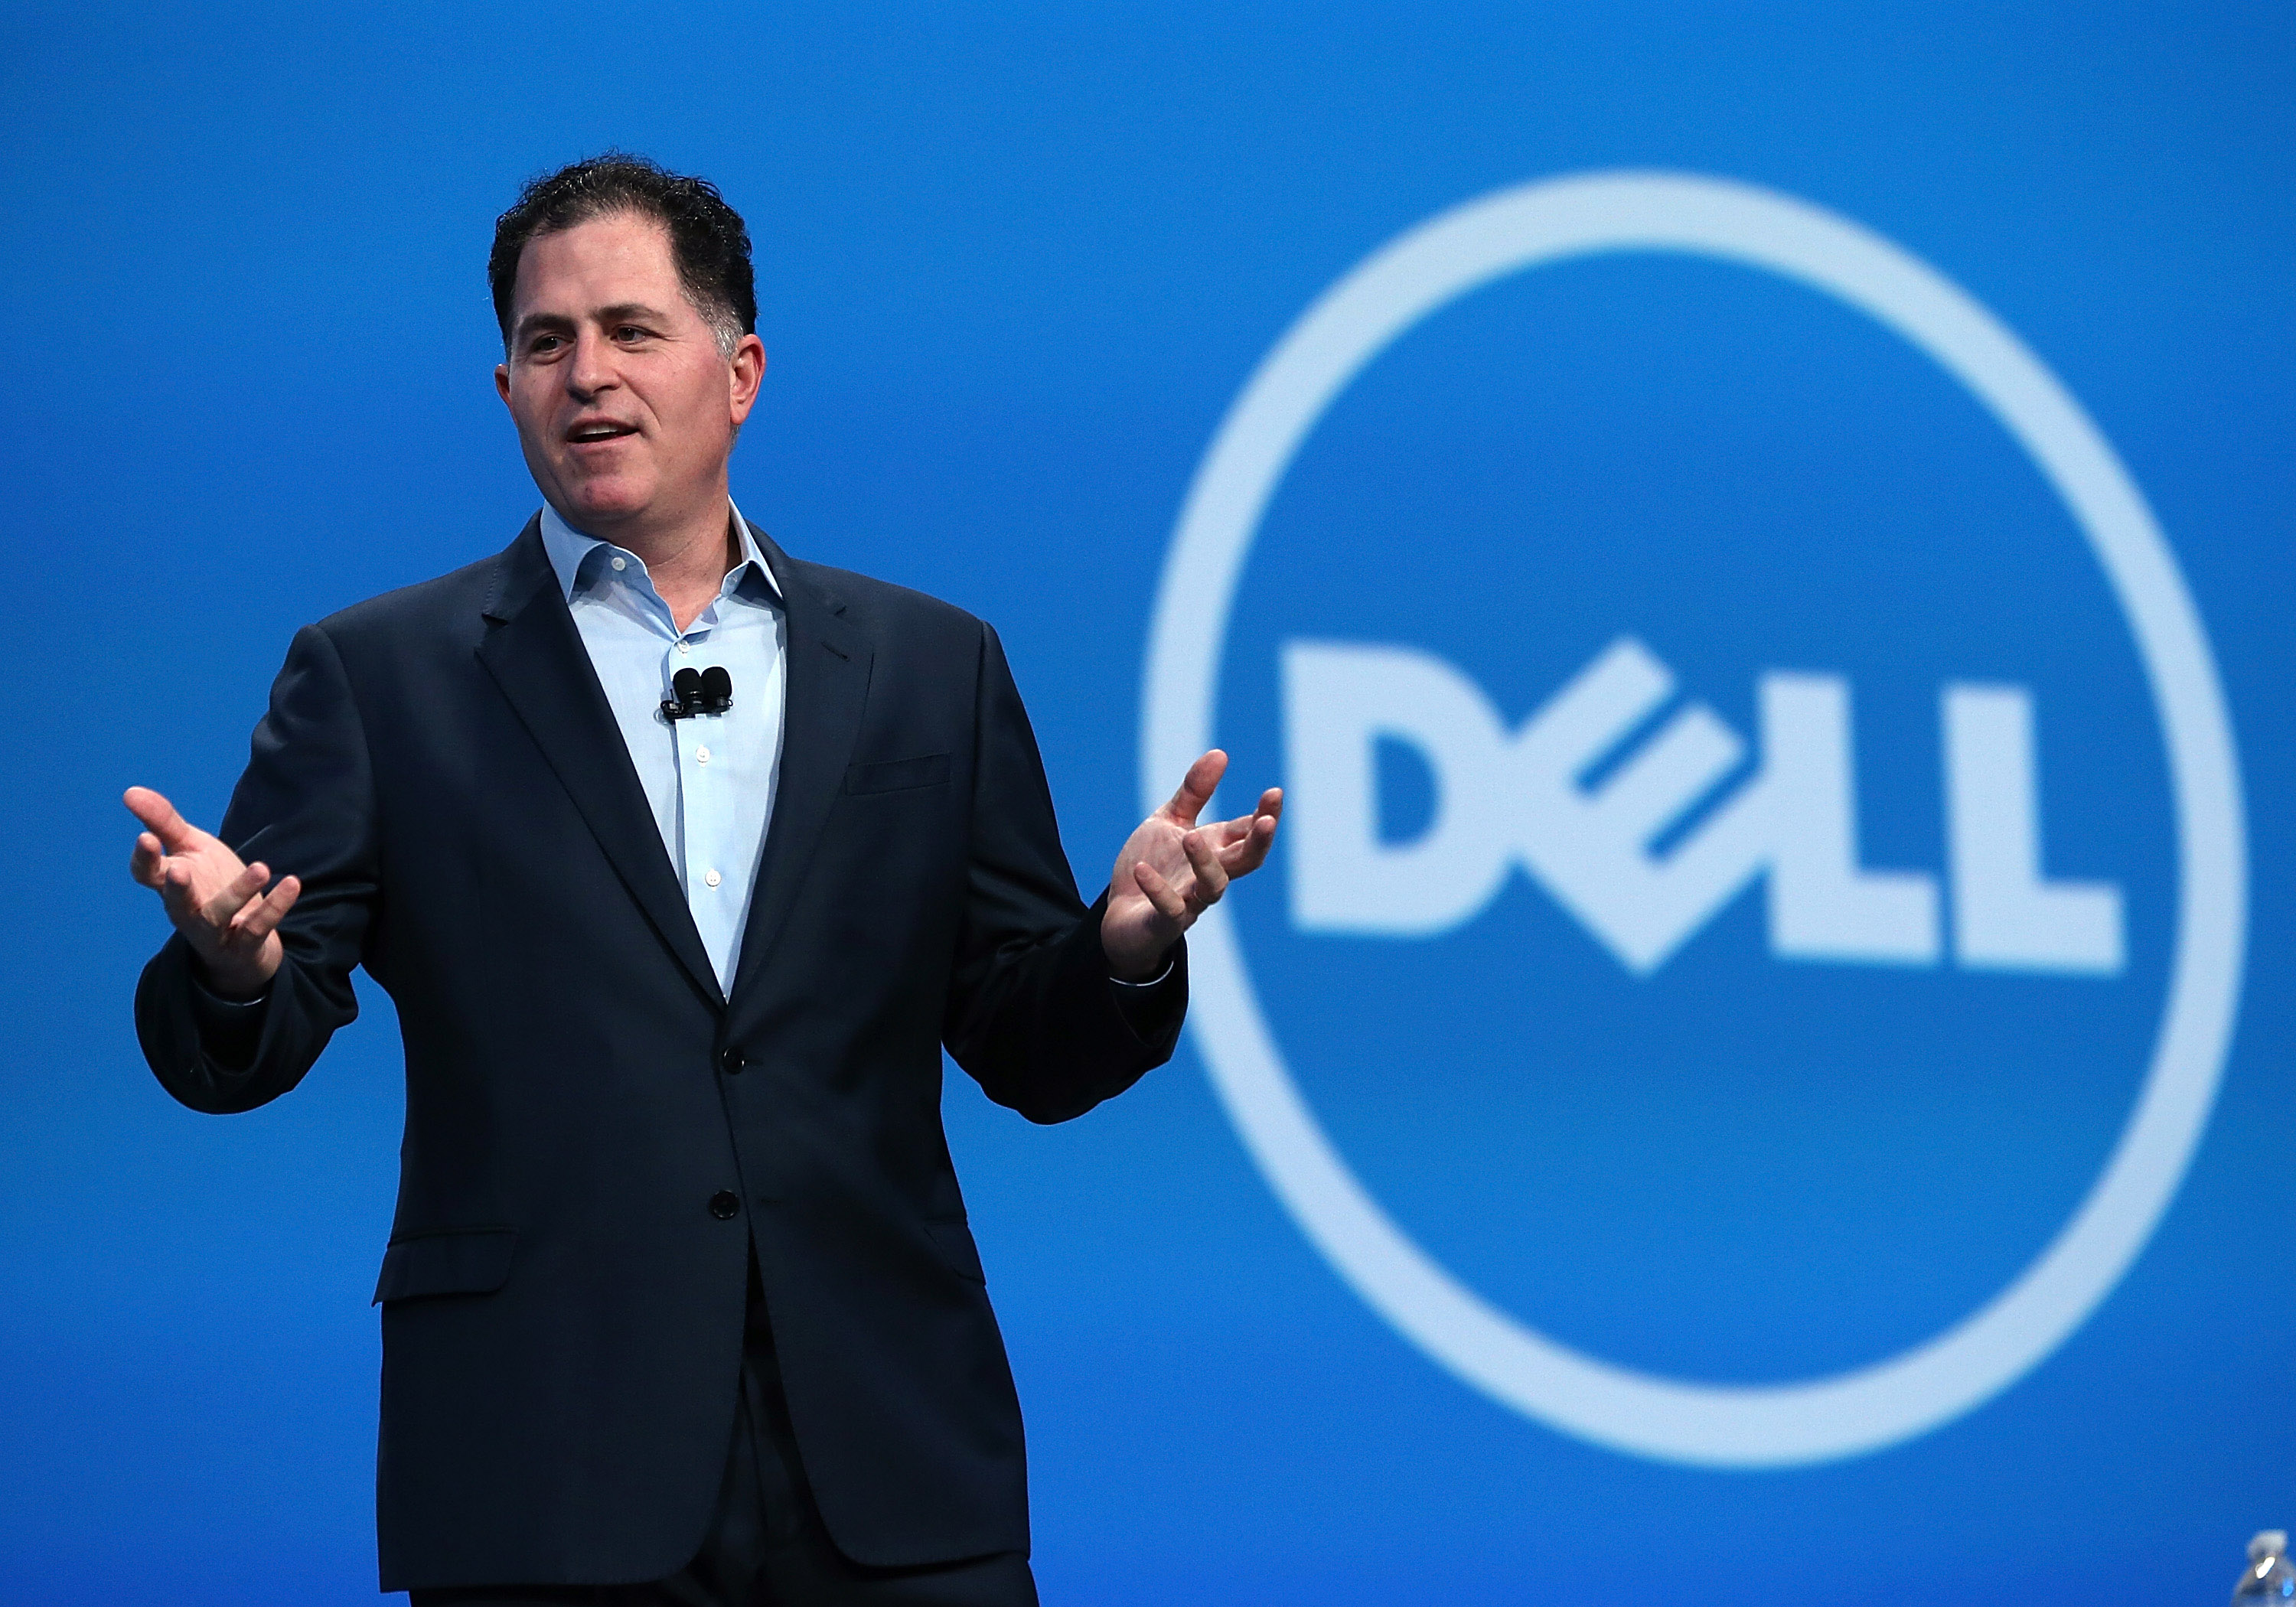 Michael Dell Addresses Oracle Open World Conference